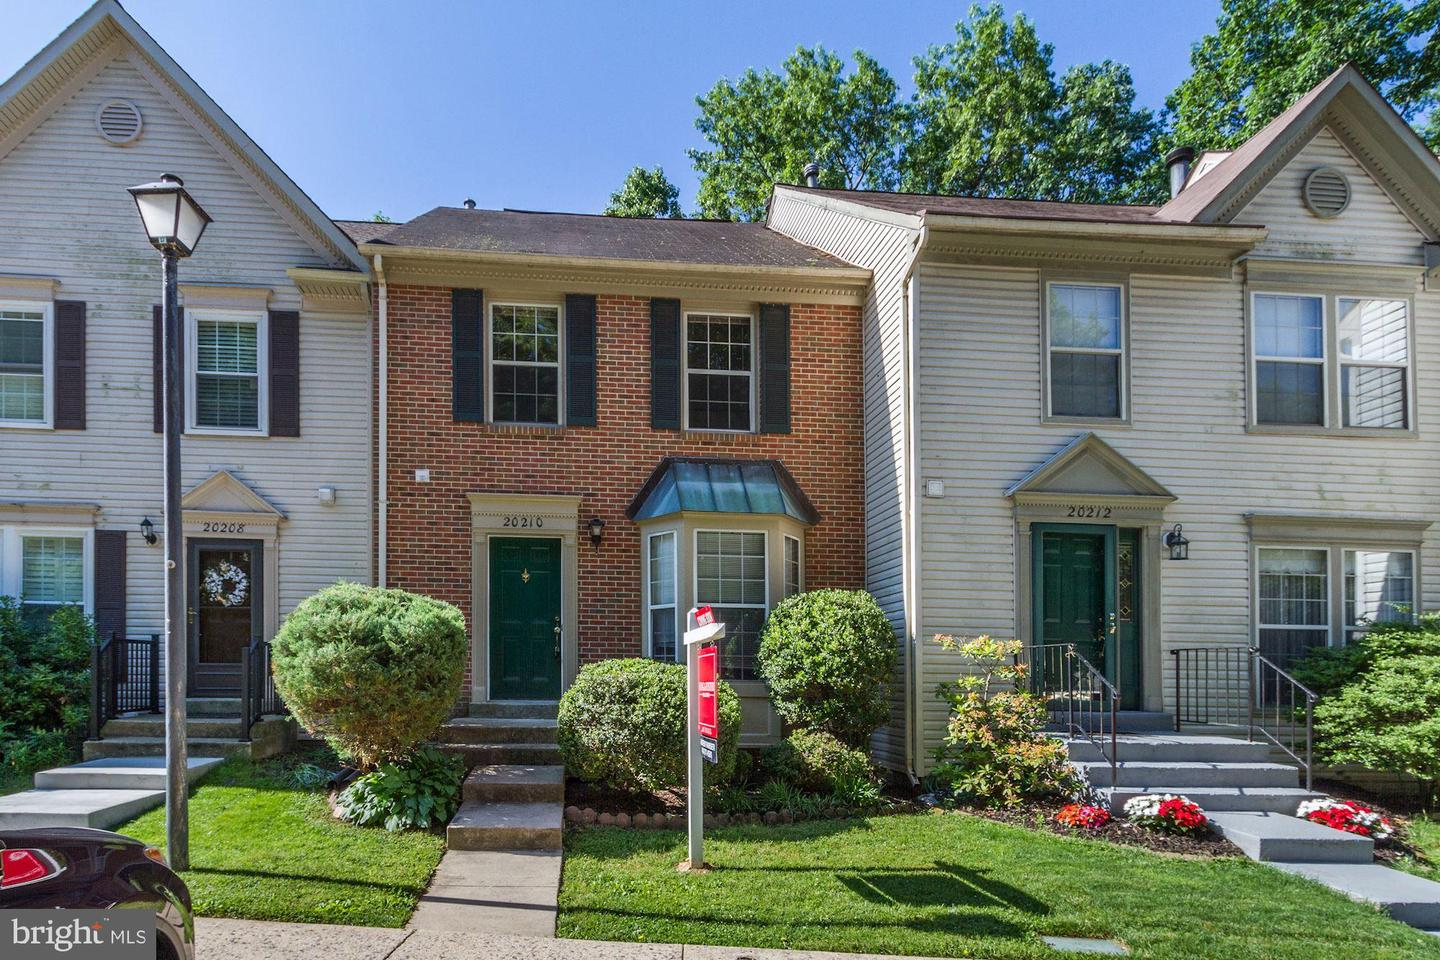 Single Family for Sale at 20210 Tidewinds Way 20210 Tidewinds Way Germantown, Maryland 20874 United States